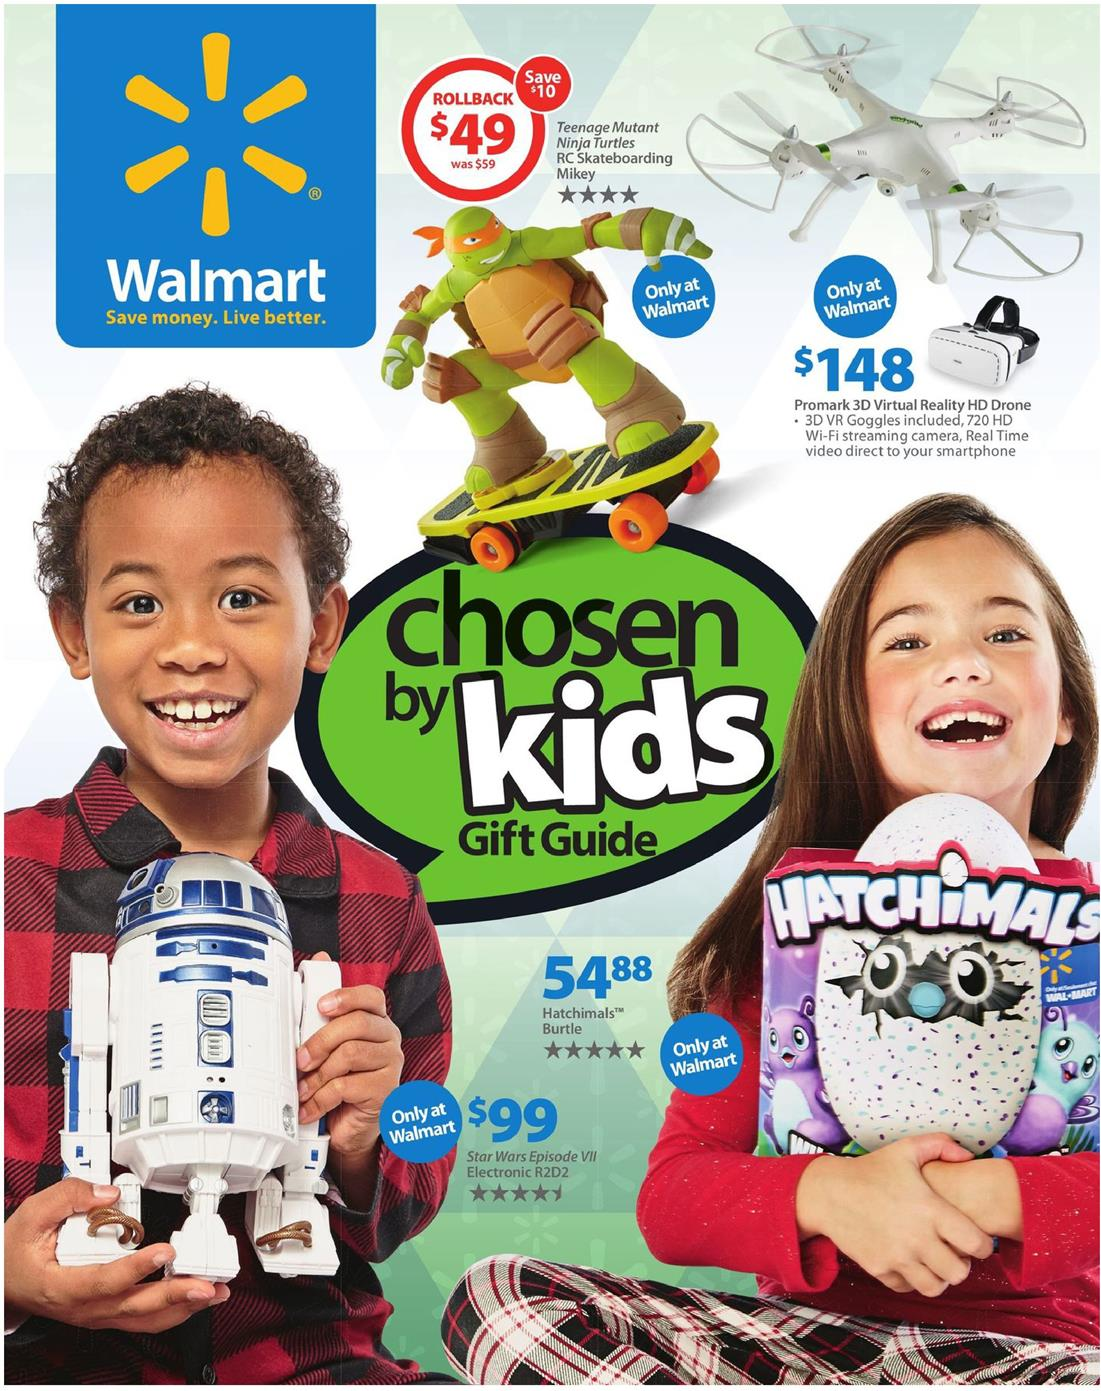 Toys For Boys Advertisement : Walmart weekly ad toys november